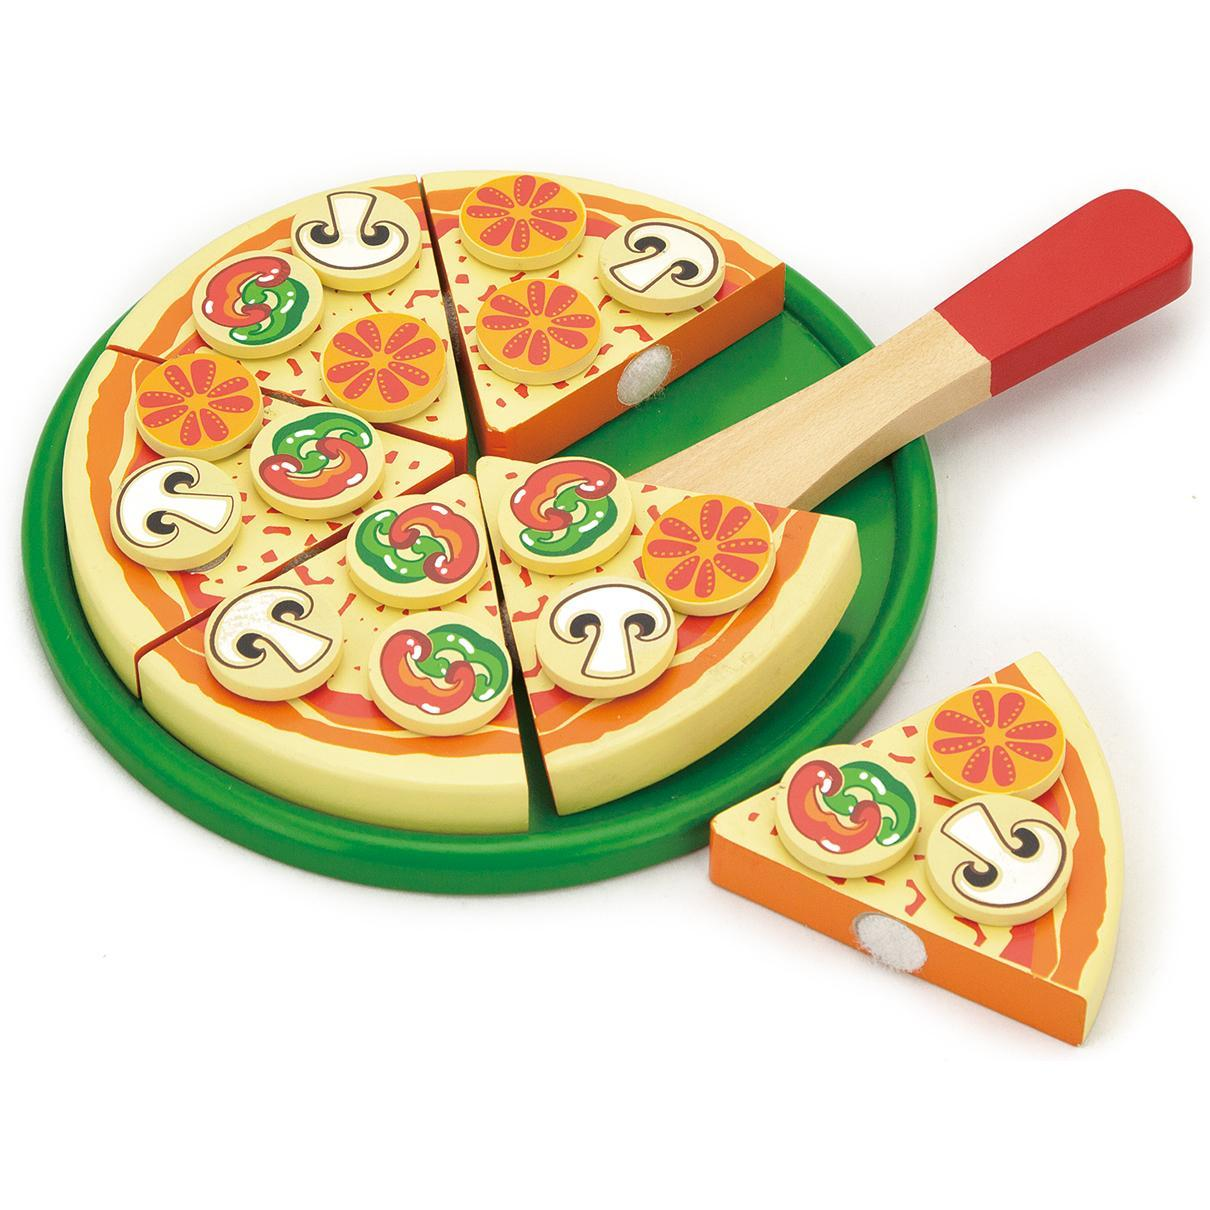 Viga Wooden Take Apart Pizza1